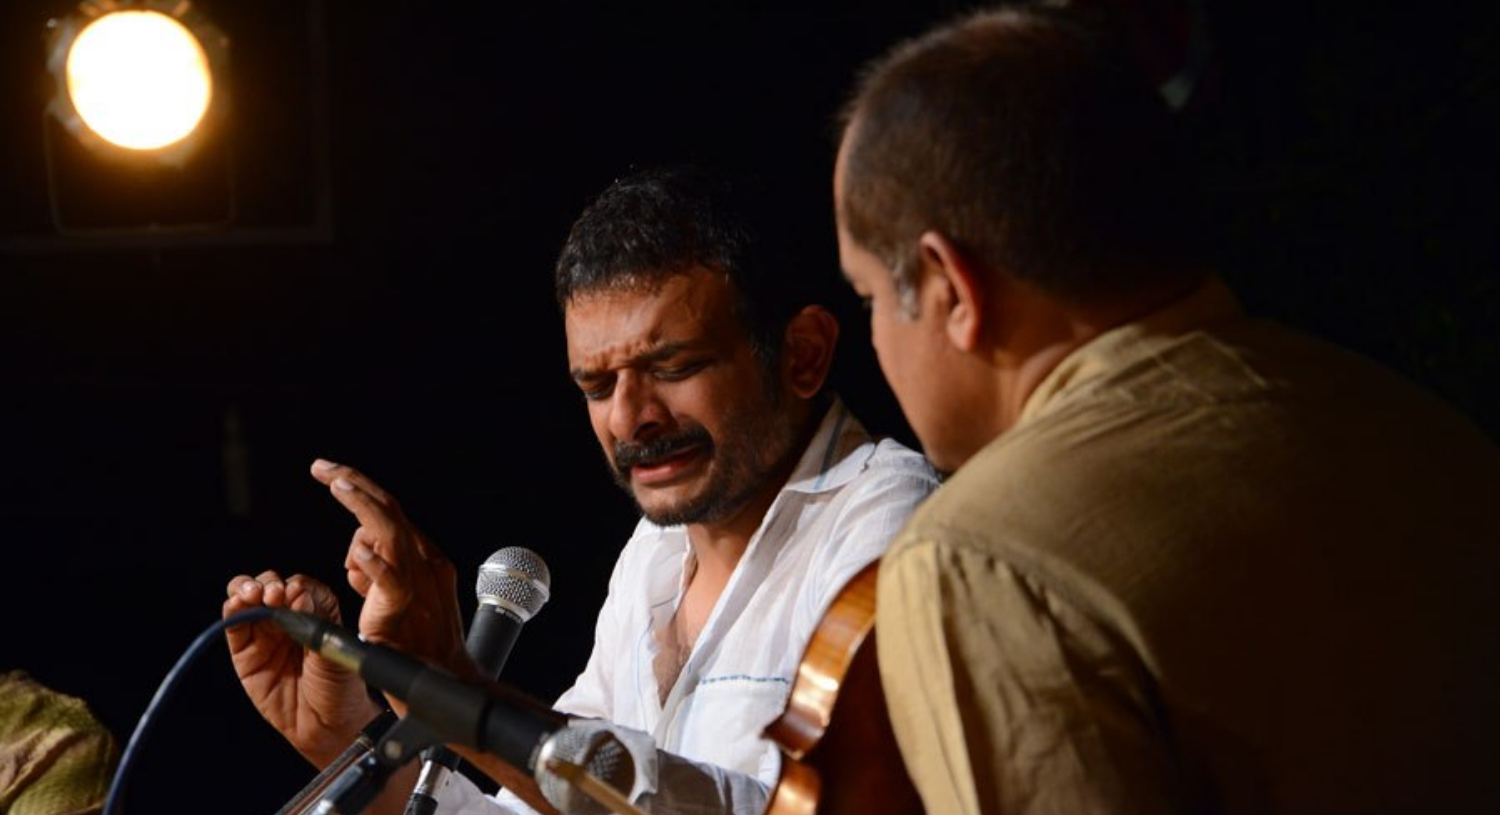 Those Who Talk of Plagiarism in Carnatic Music Know Not About the Tradition